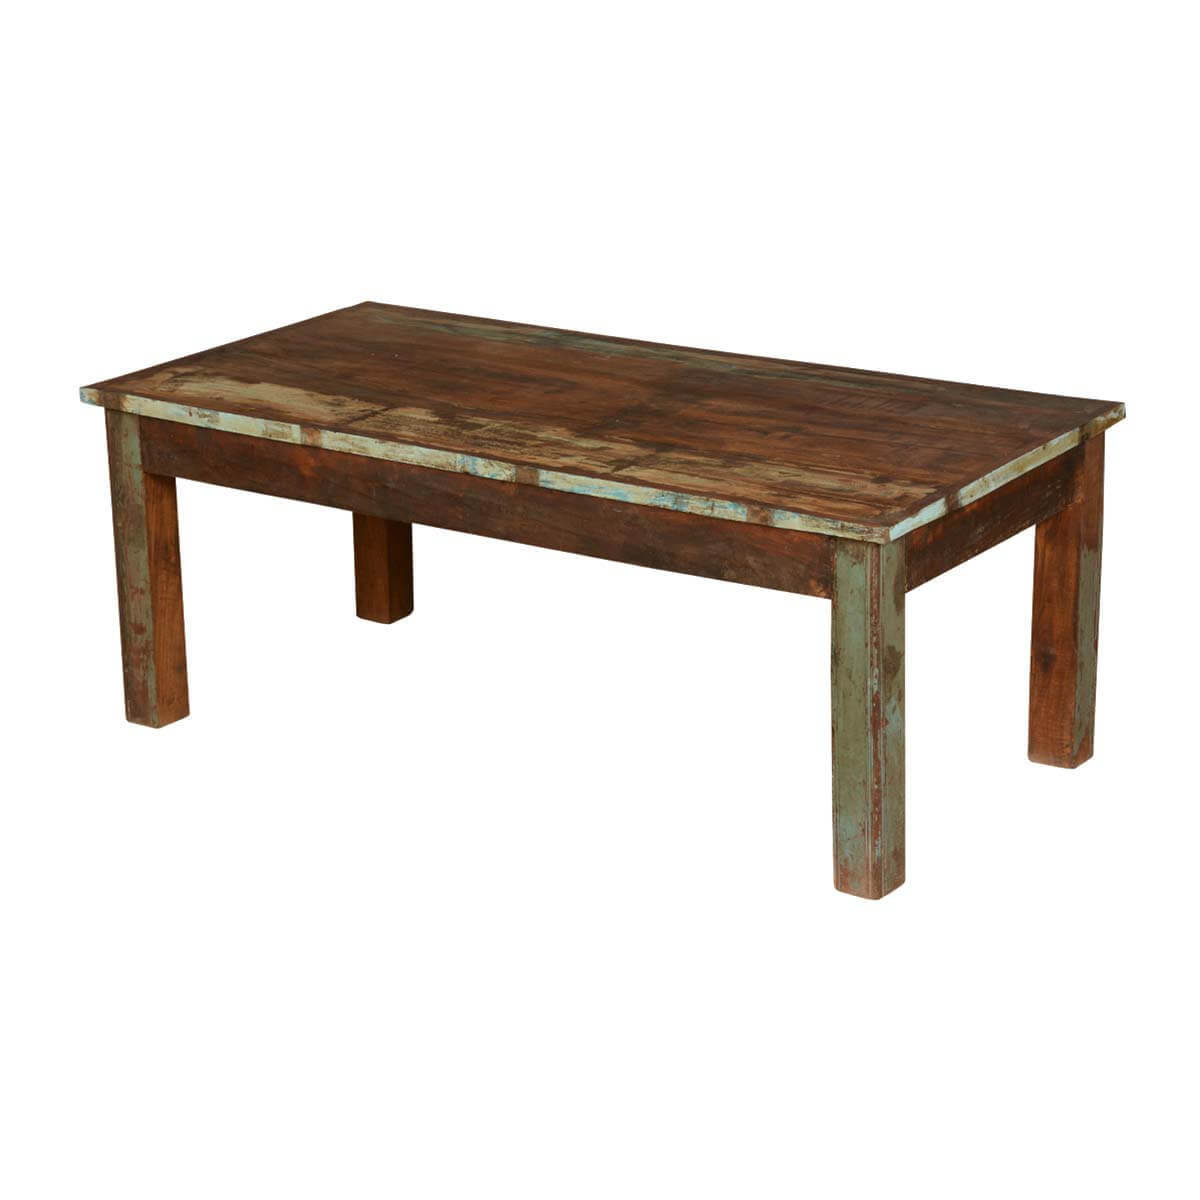 Farmhouse distressed reclaimed wood rustic coffee table Rustic wooden coffee tables